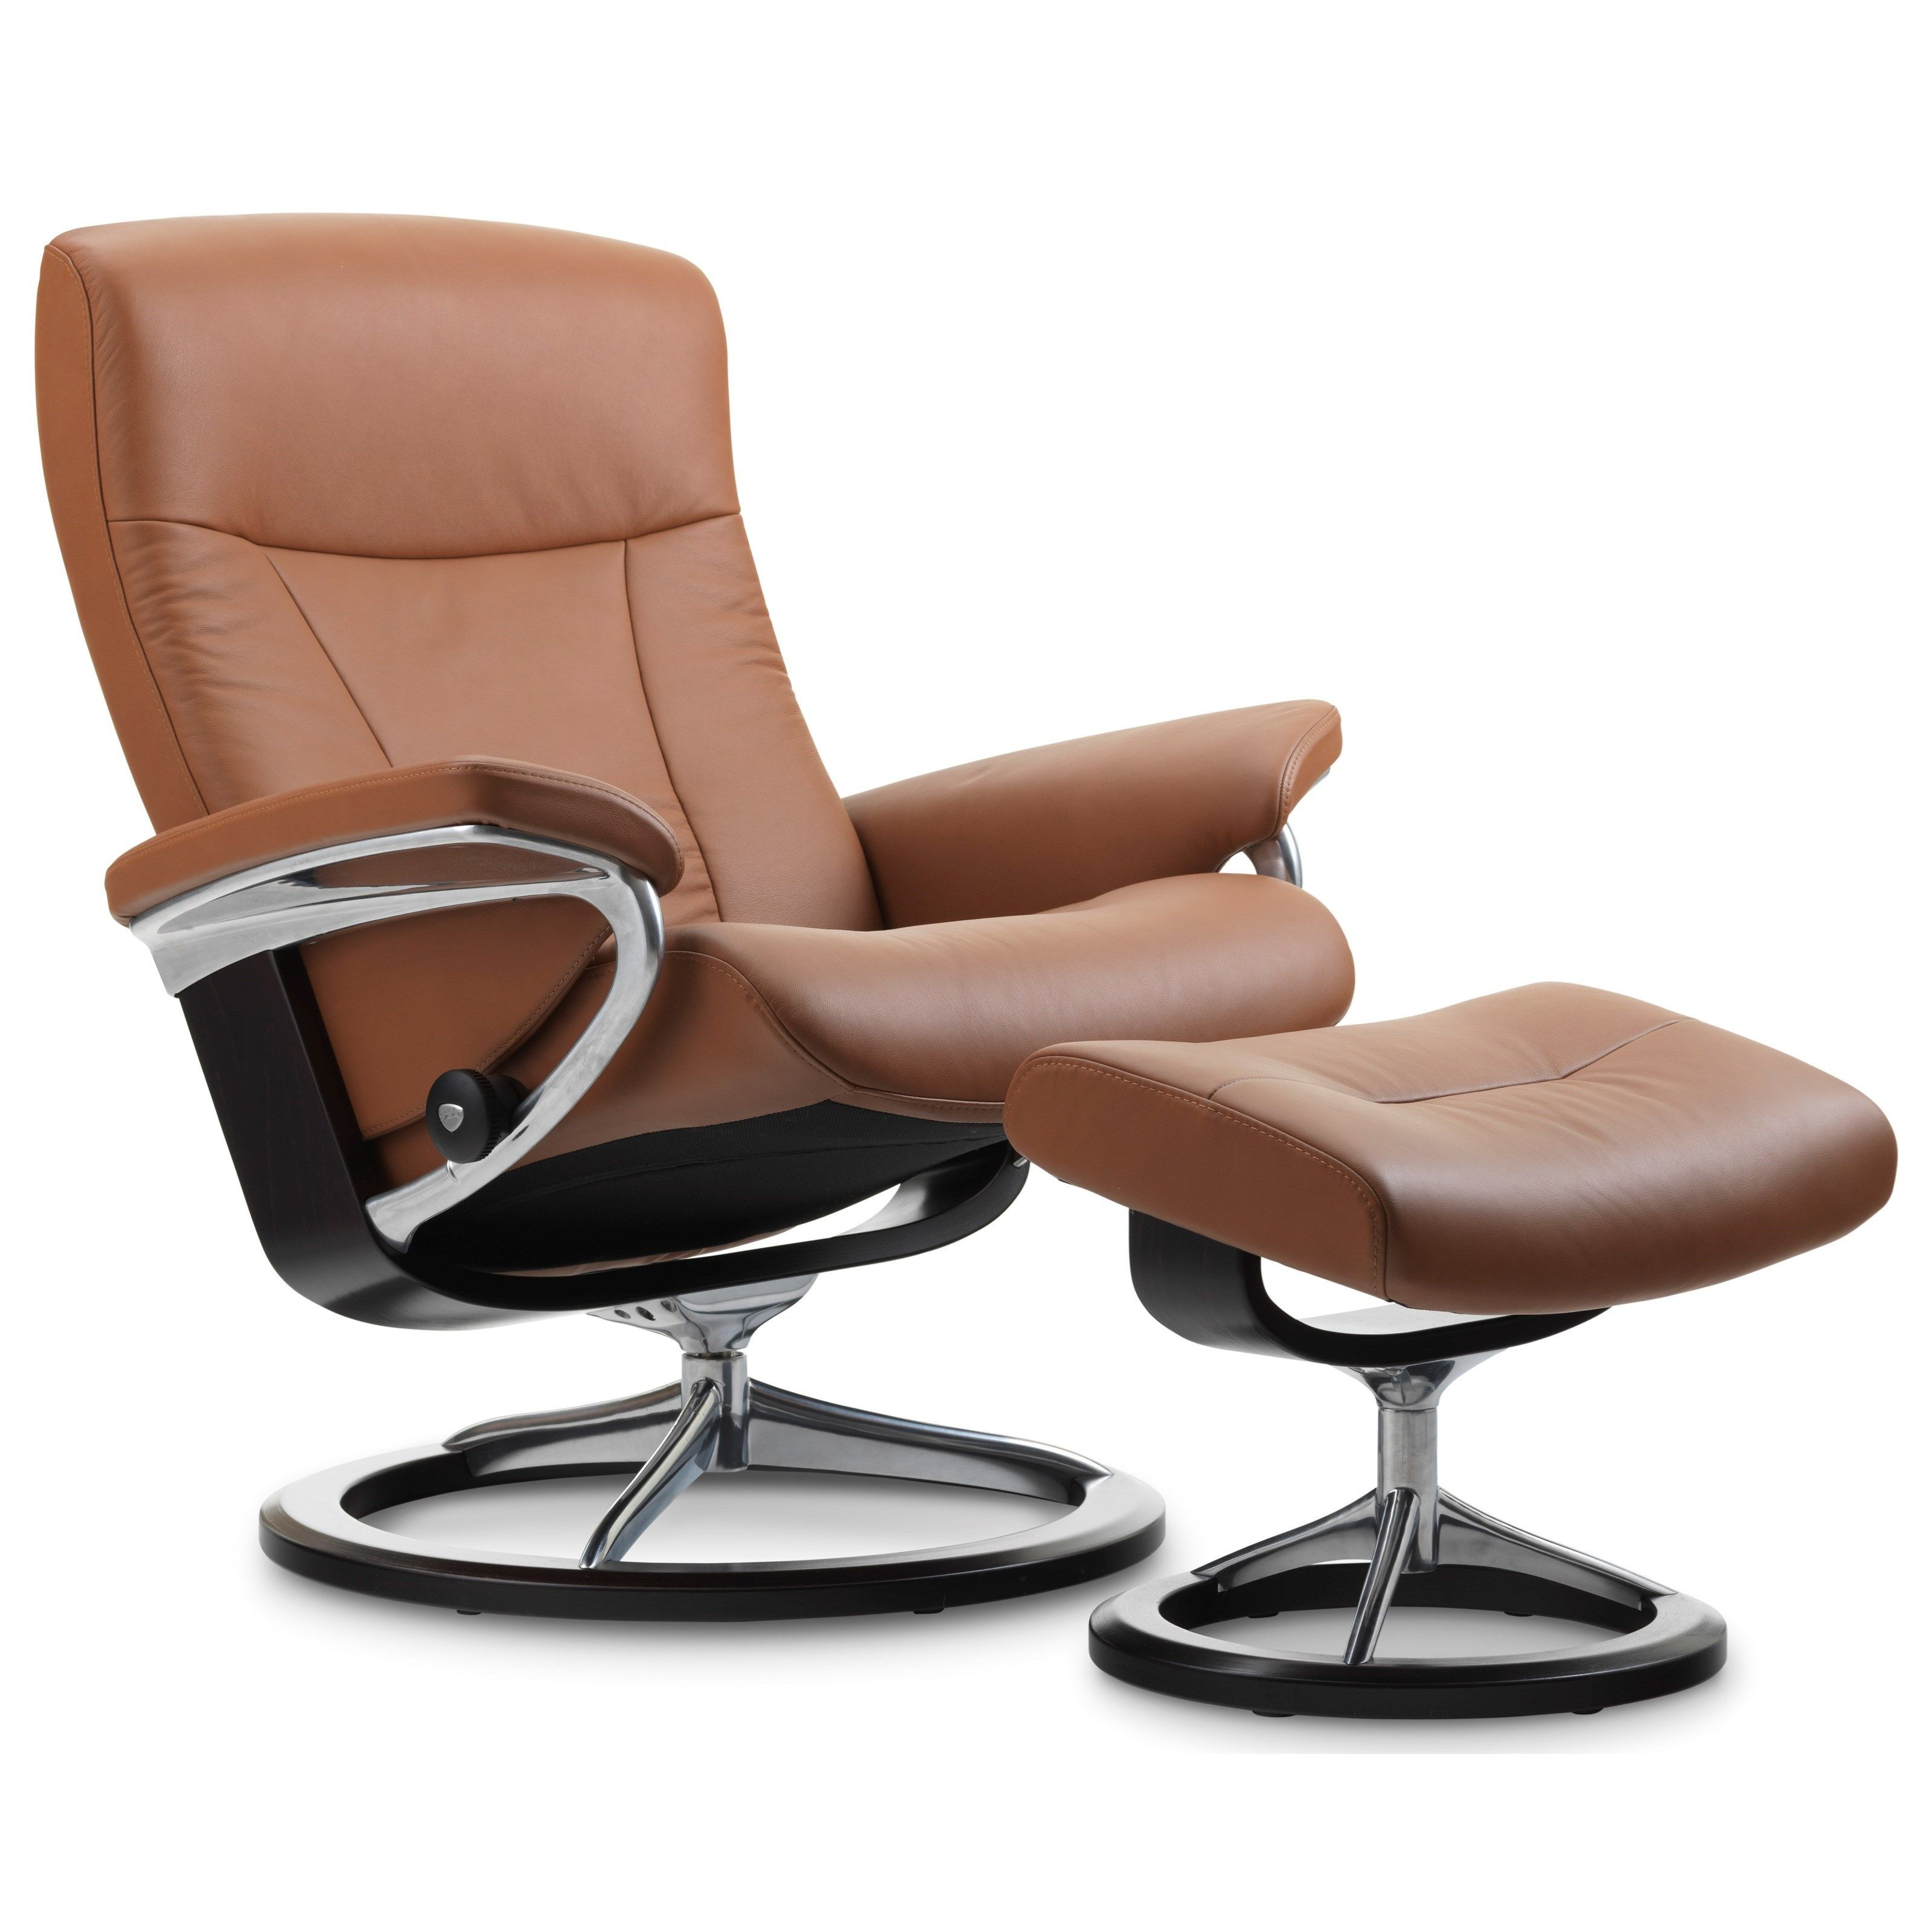 Fauteuils Relax Stressless Prix Stressless President Small Signature Chair By Stressless By